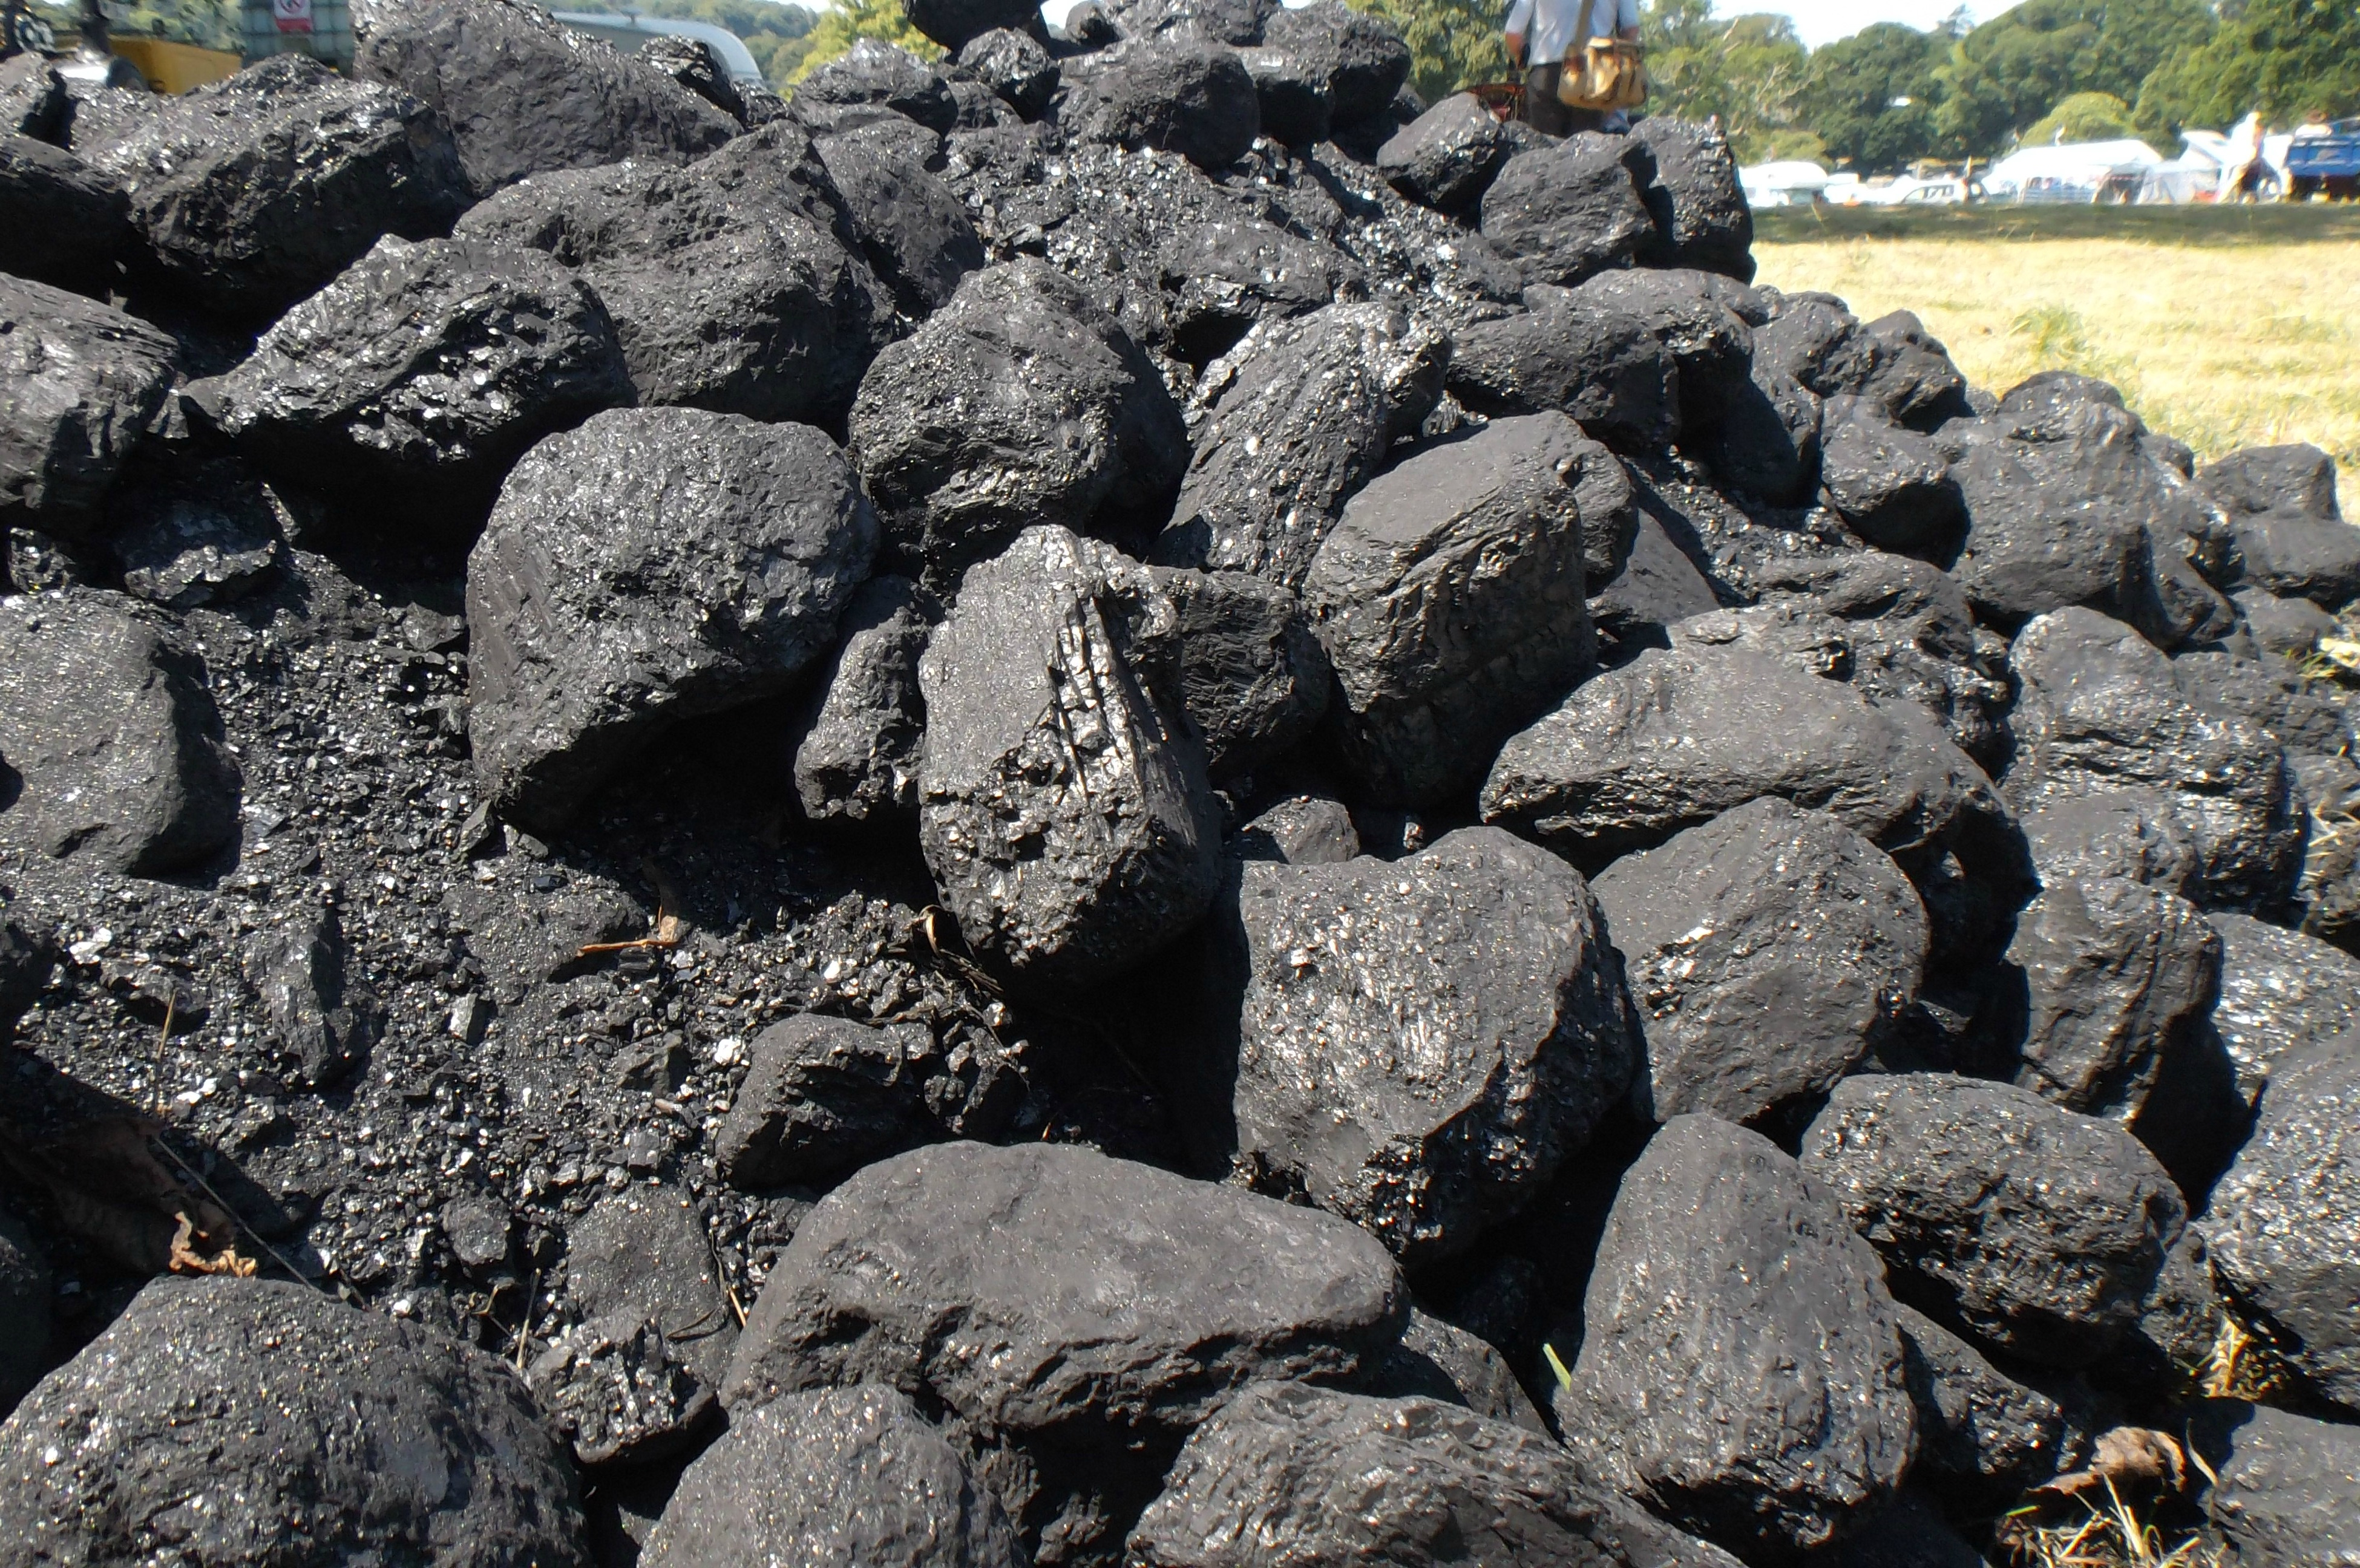 coal_pile_creditoatsy40_flickr_0